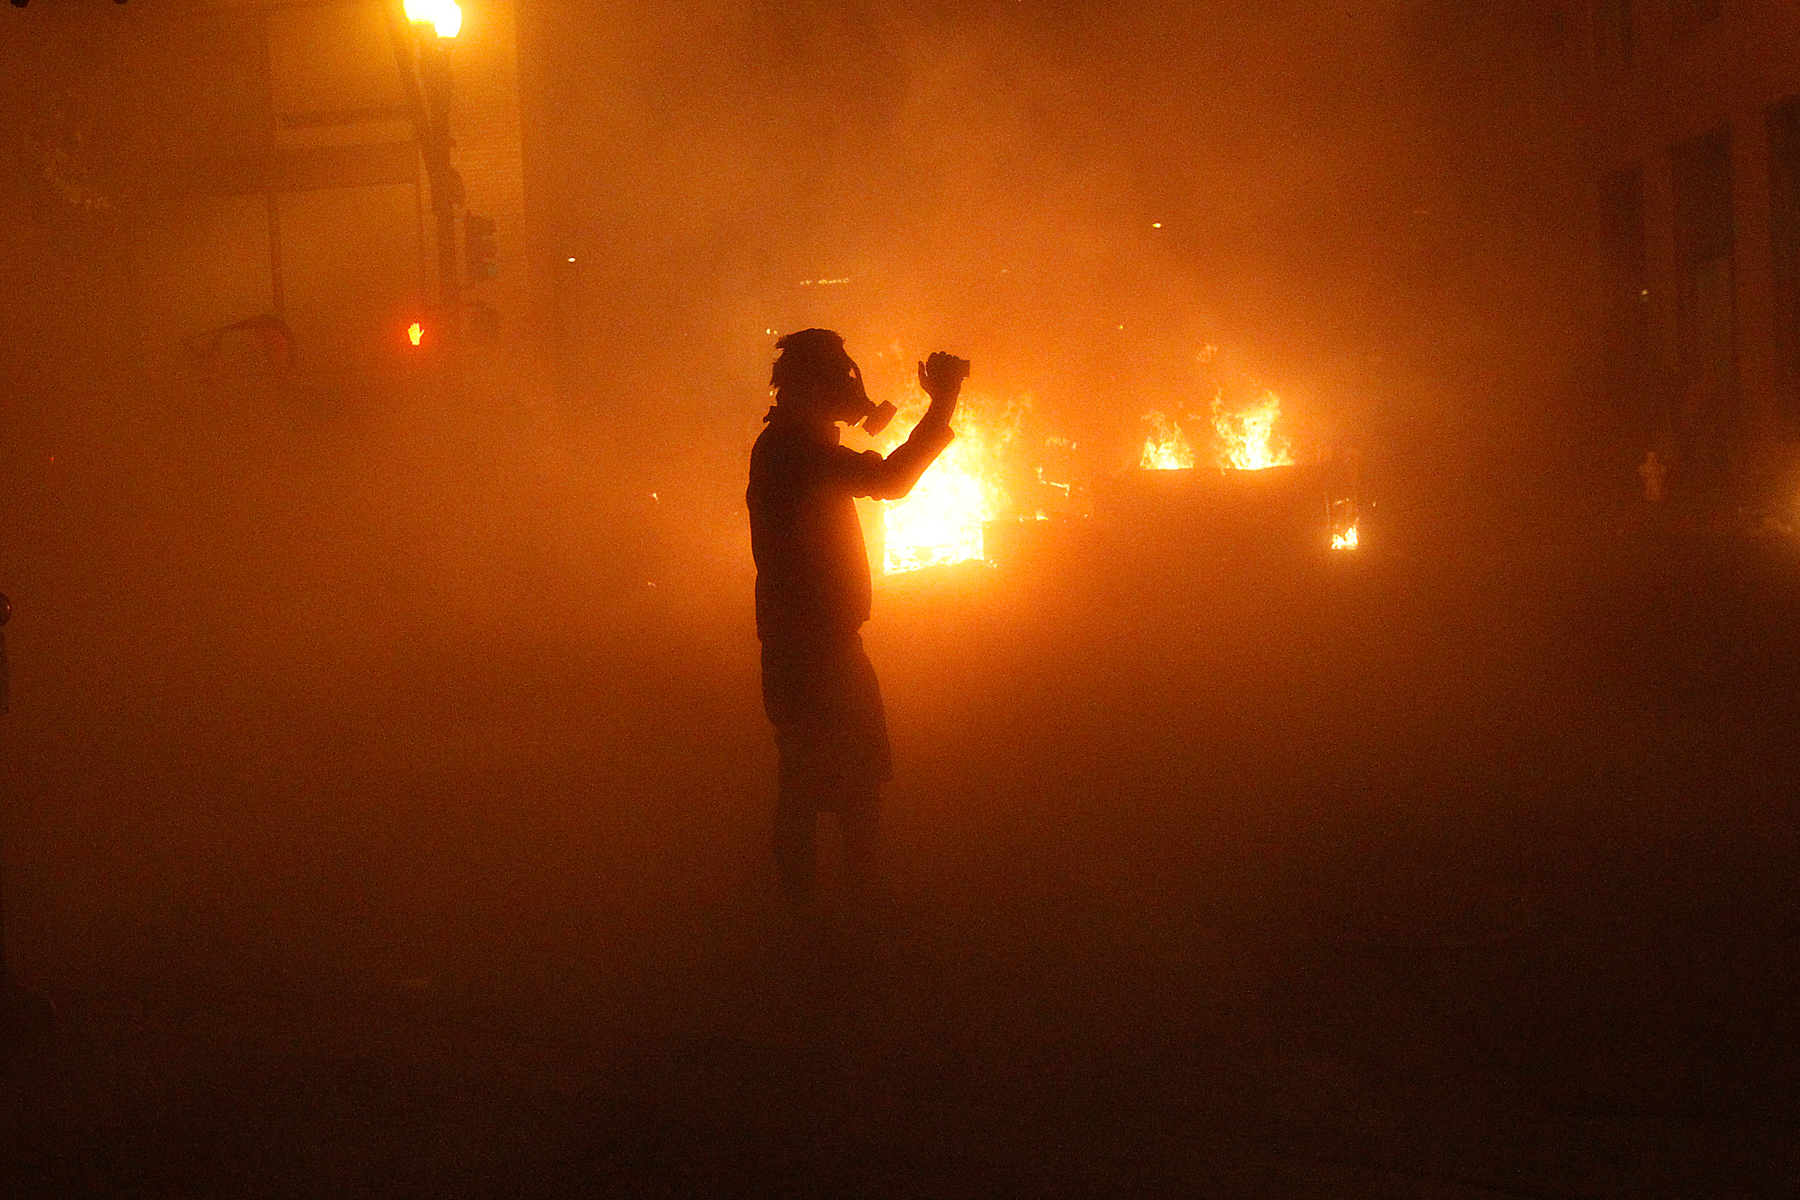 A demonstrator uses a video camera as he stands in a cloud of tear gas shot by police at the Occupy Oakland demonstration in Oakland, California, November 3, 2011. Police in riot gear clashed with protesters in Oakland in the early morning hours on Thursday, firing tear gas to disperse demonstrators lingering in the streets after a day of mostly peaceful rallies against economic inequality and police brutality.